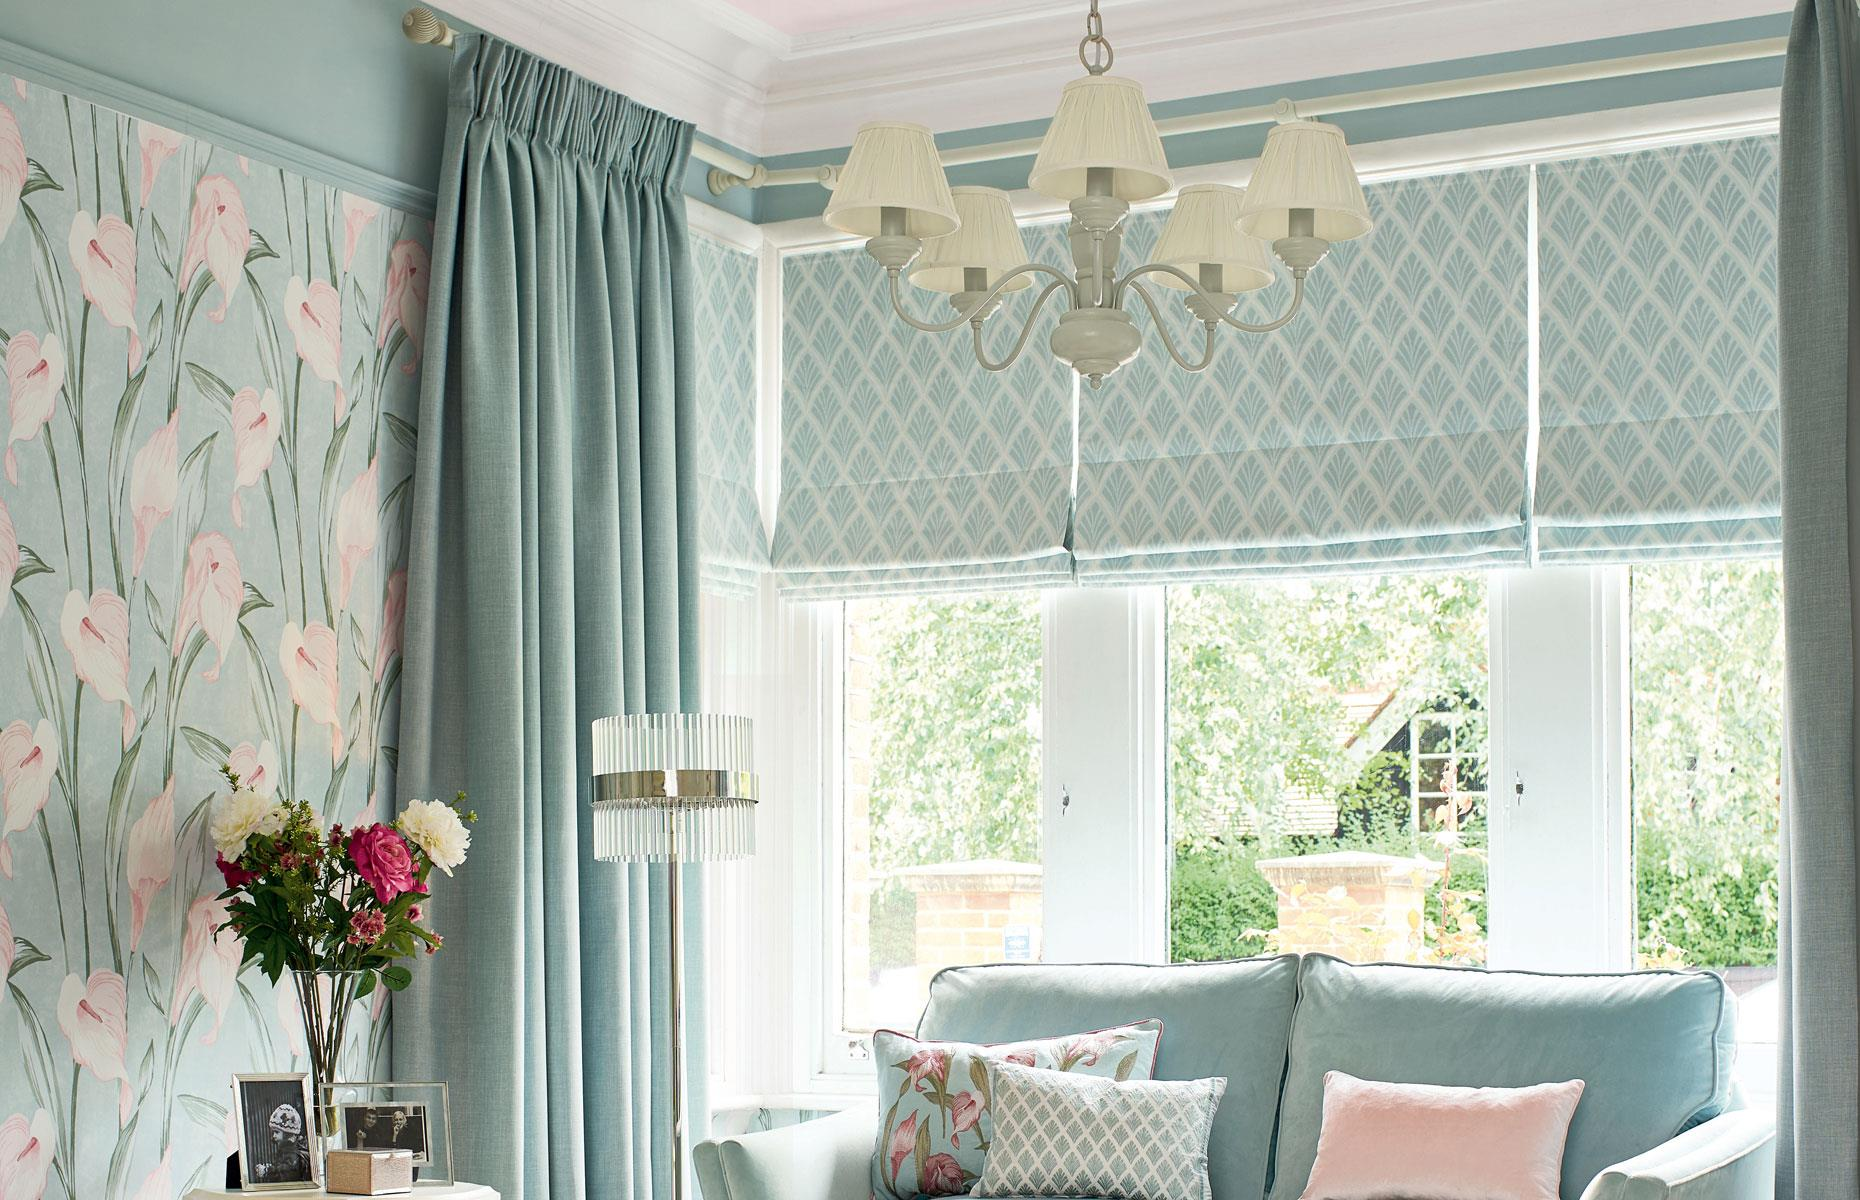 Window dressing ideas for every style and budget   loveproperty.com